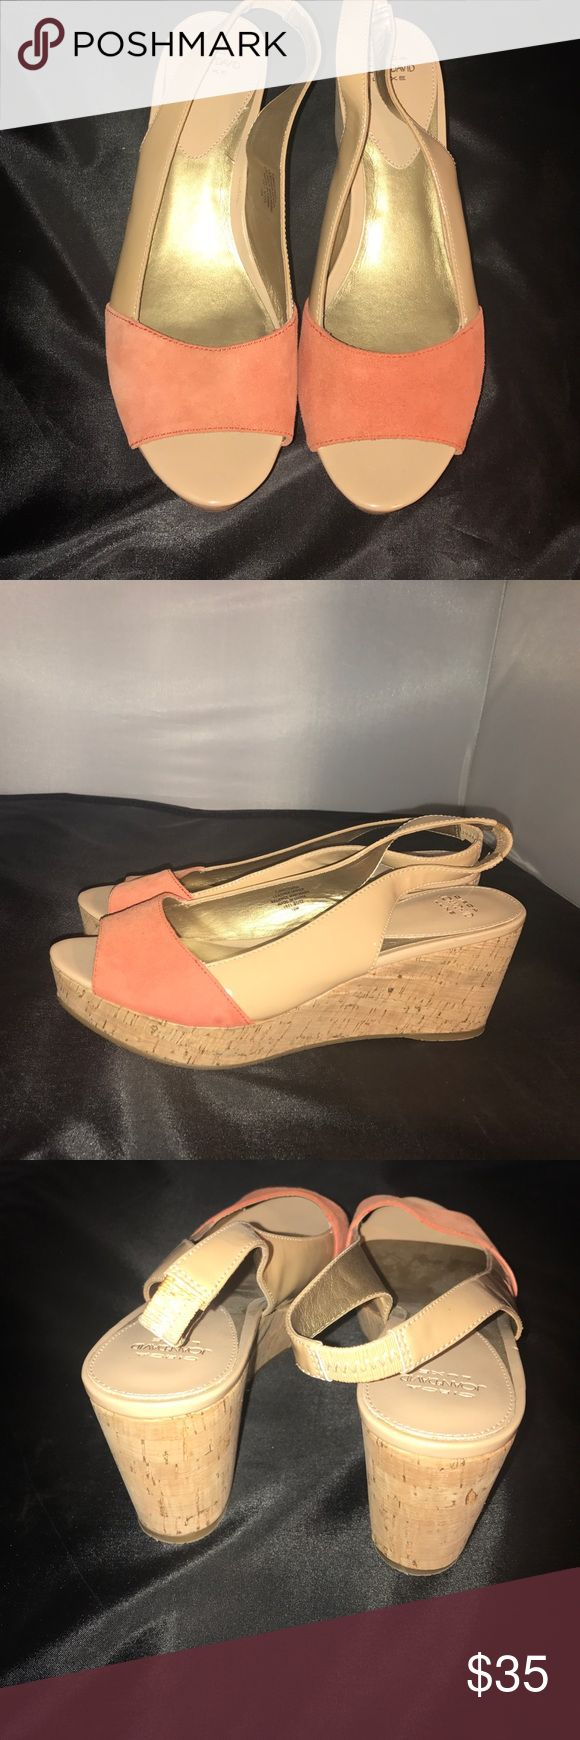 Joan & David Circa Luxe Open Toe Shoes Brand New These Joan & David Shoes feature a light orange - peachy suede , taupe patent leather and wedge cork sole. Brand New. Never Worn tags removed. Joan & David Shoes Wedges